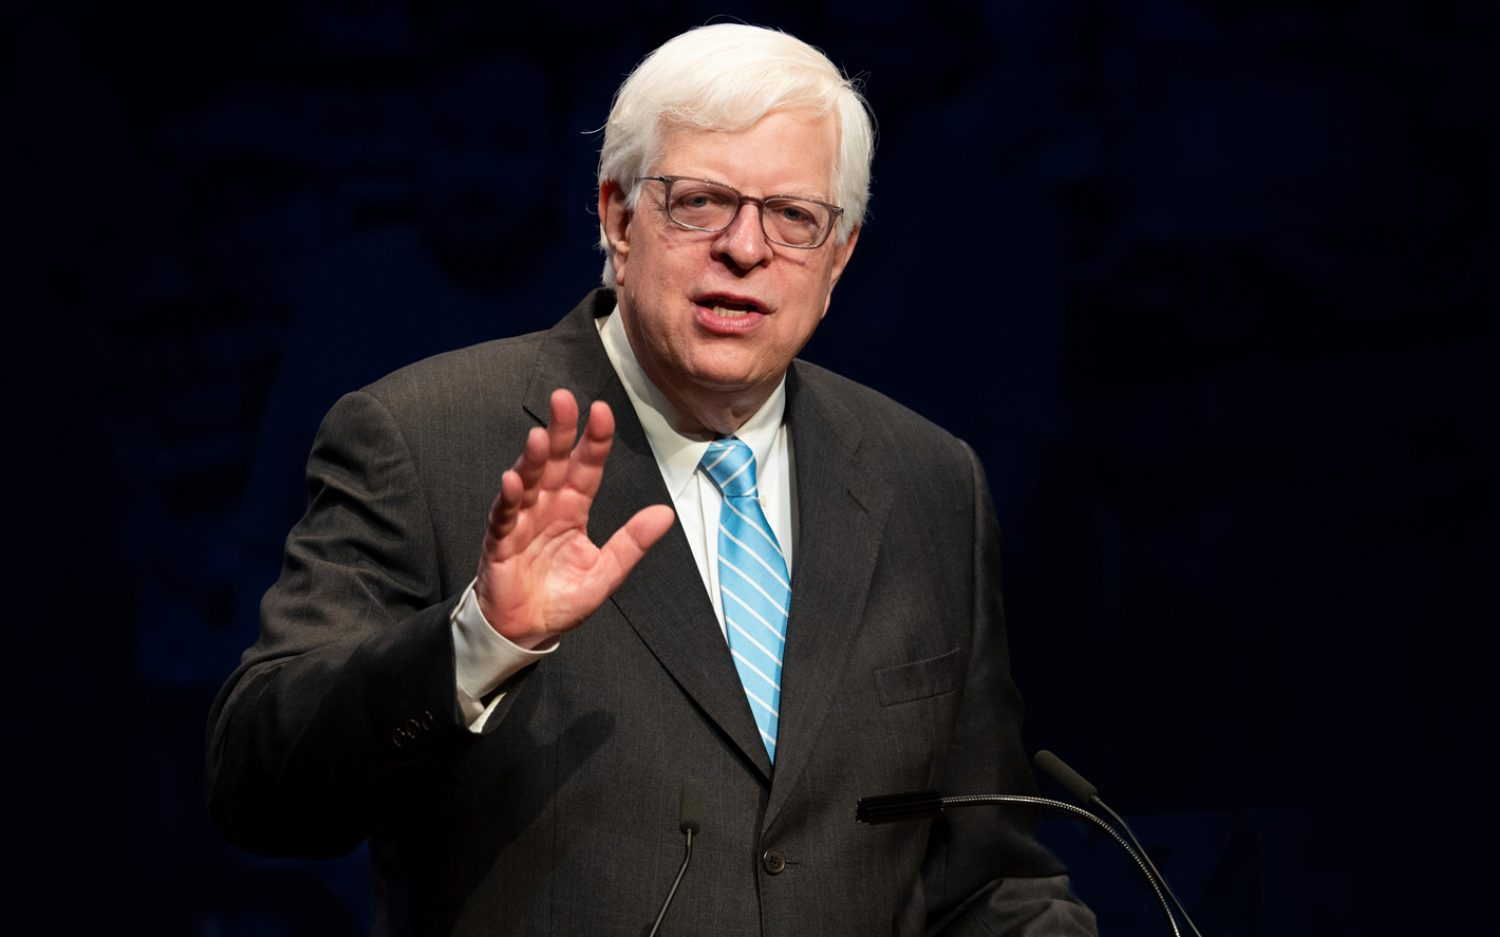 An evening with Dennis Prager